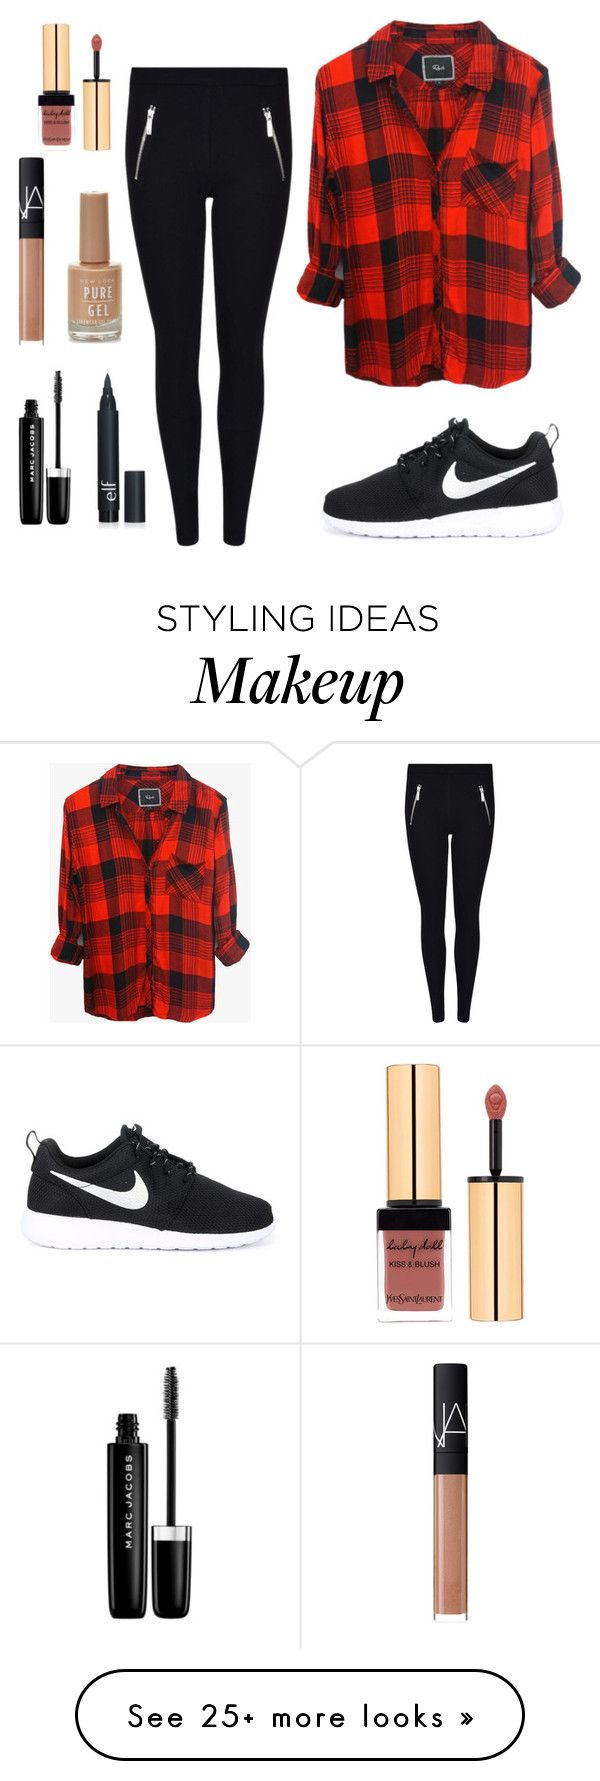 """Untitled #5"" by kristinfowler on Polyvore featuring Rails, MICHAEL Michael Kors, NIKE, Marc Jacobs and NARS Cosmetics"